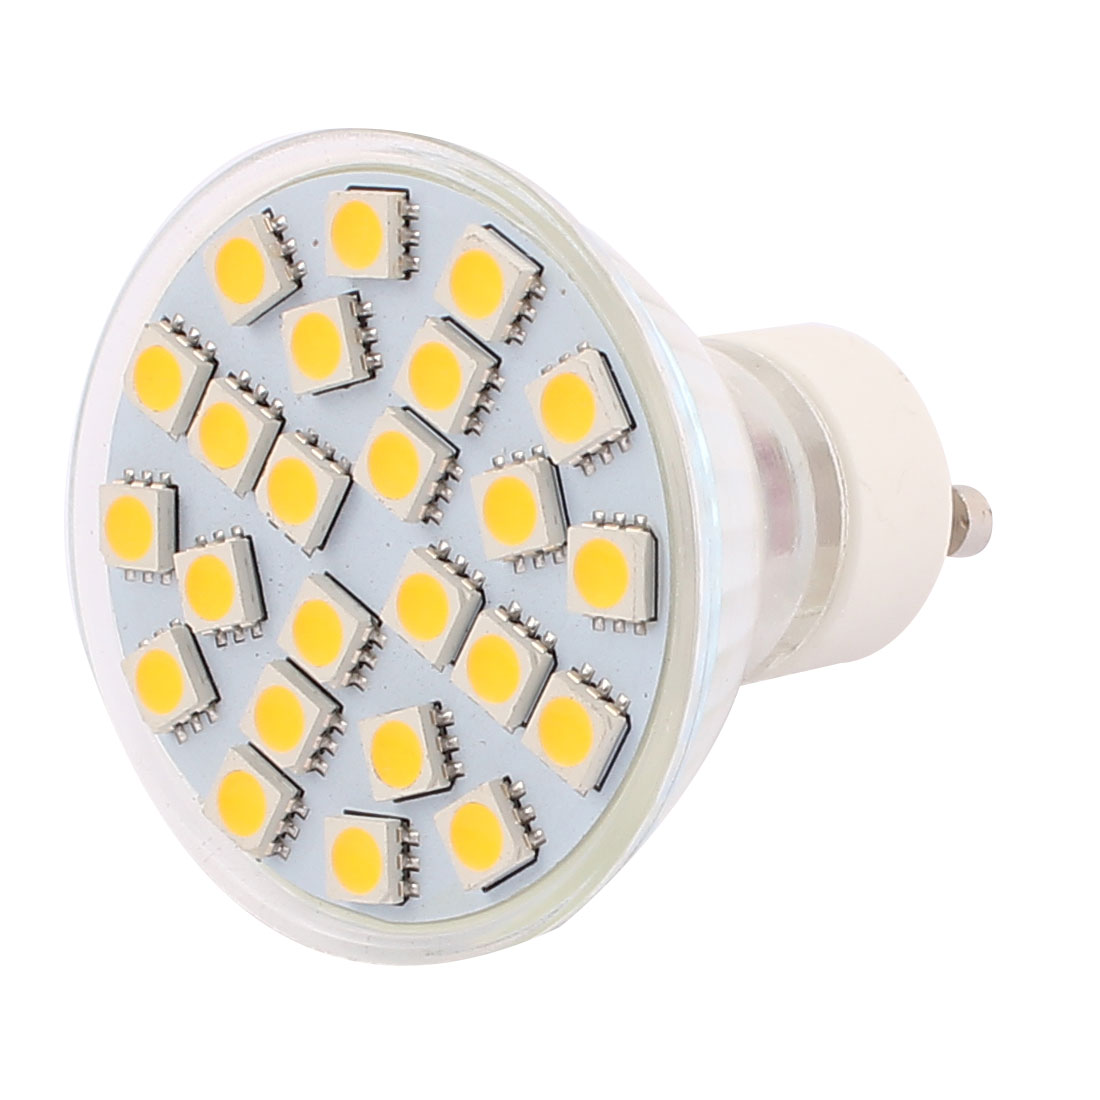 GU10 AC 110V 3W SMD 5050 24 LEDs Glass Energy Saving LED Lamp Bulb Warm White